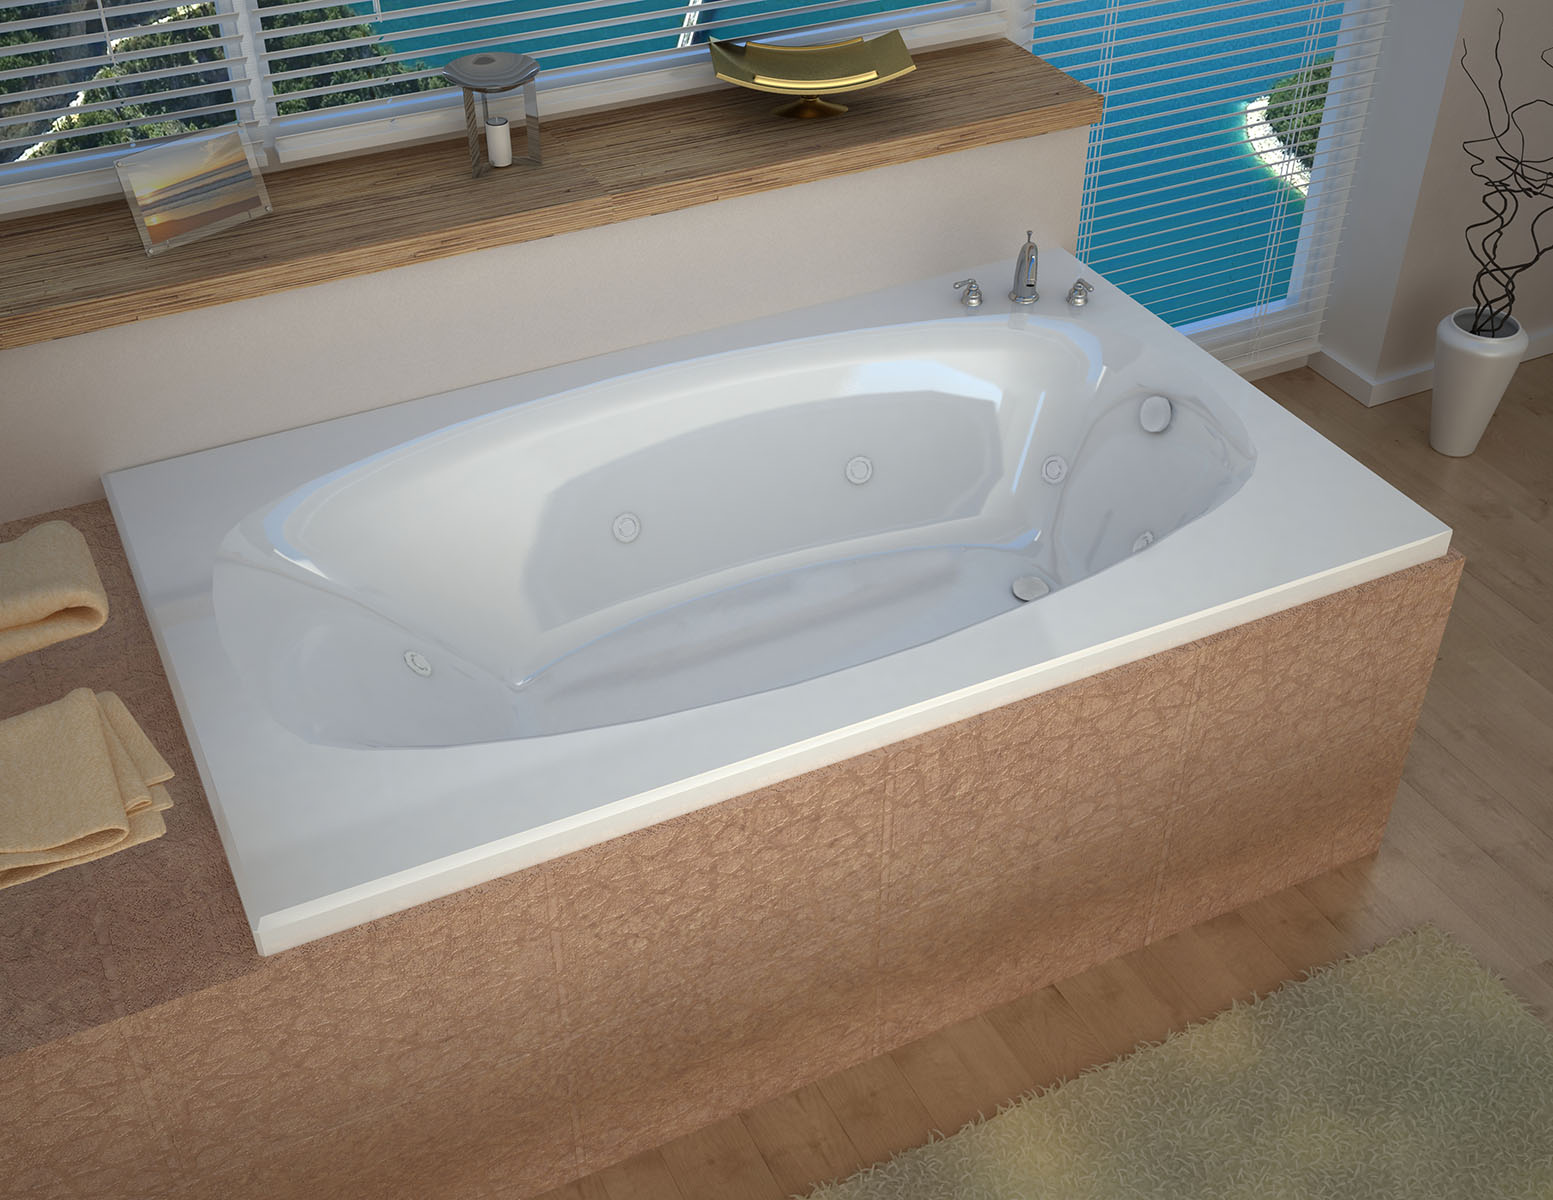 Talia 42 x 66 Rectangular Whirlpool Jetted Bathtub